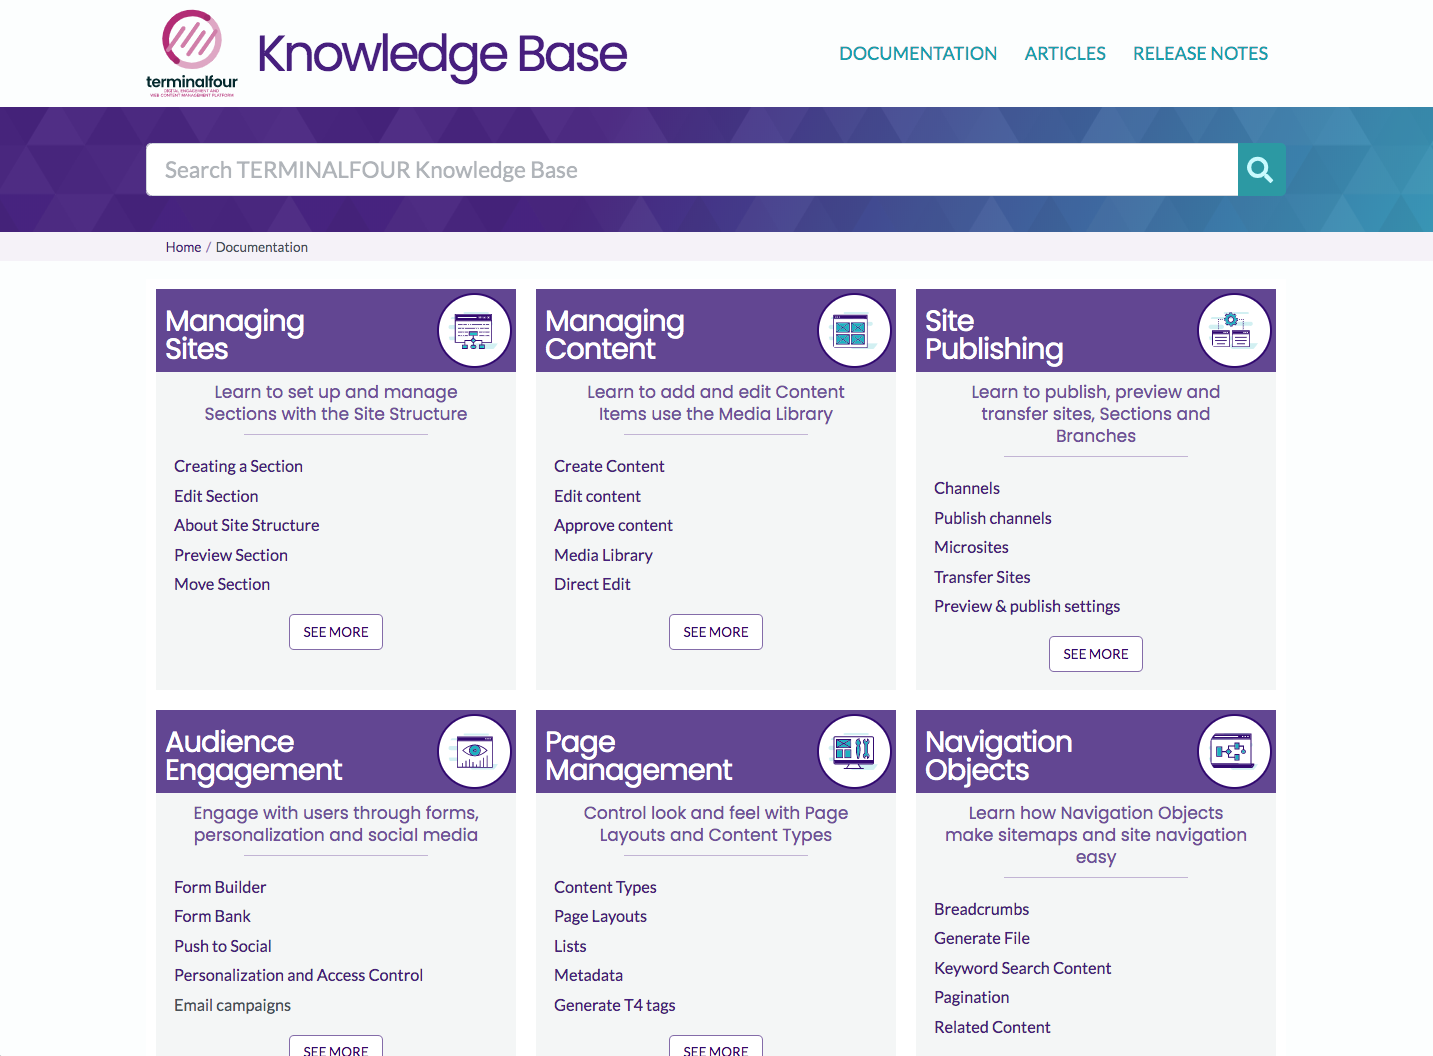 A screenshot of the knowledge base homepage